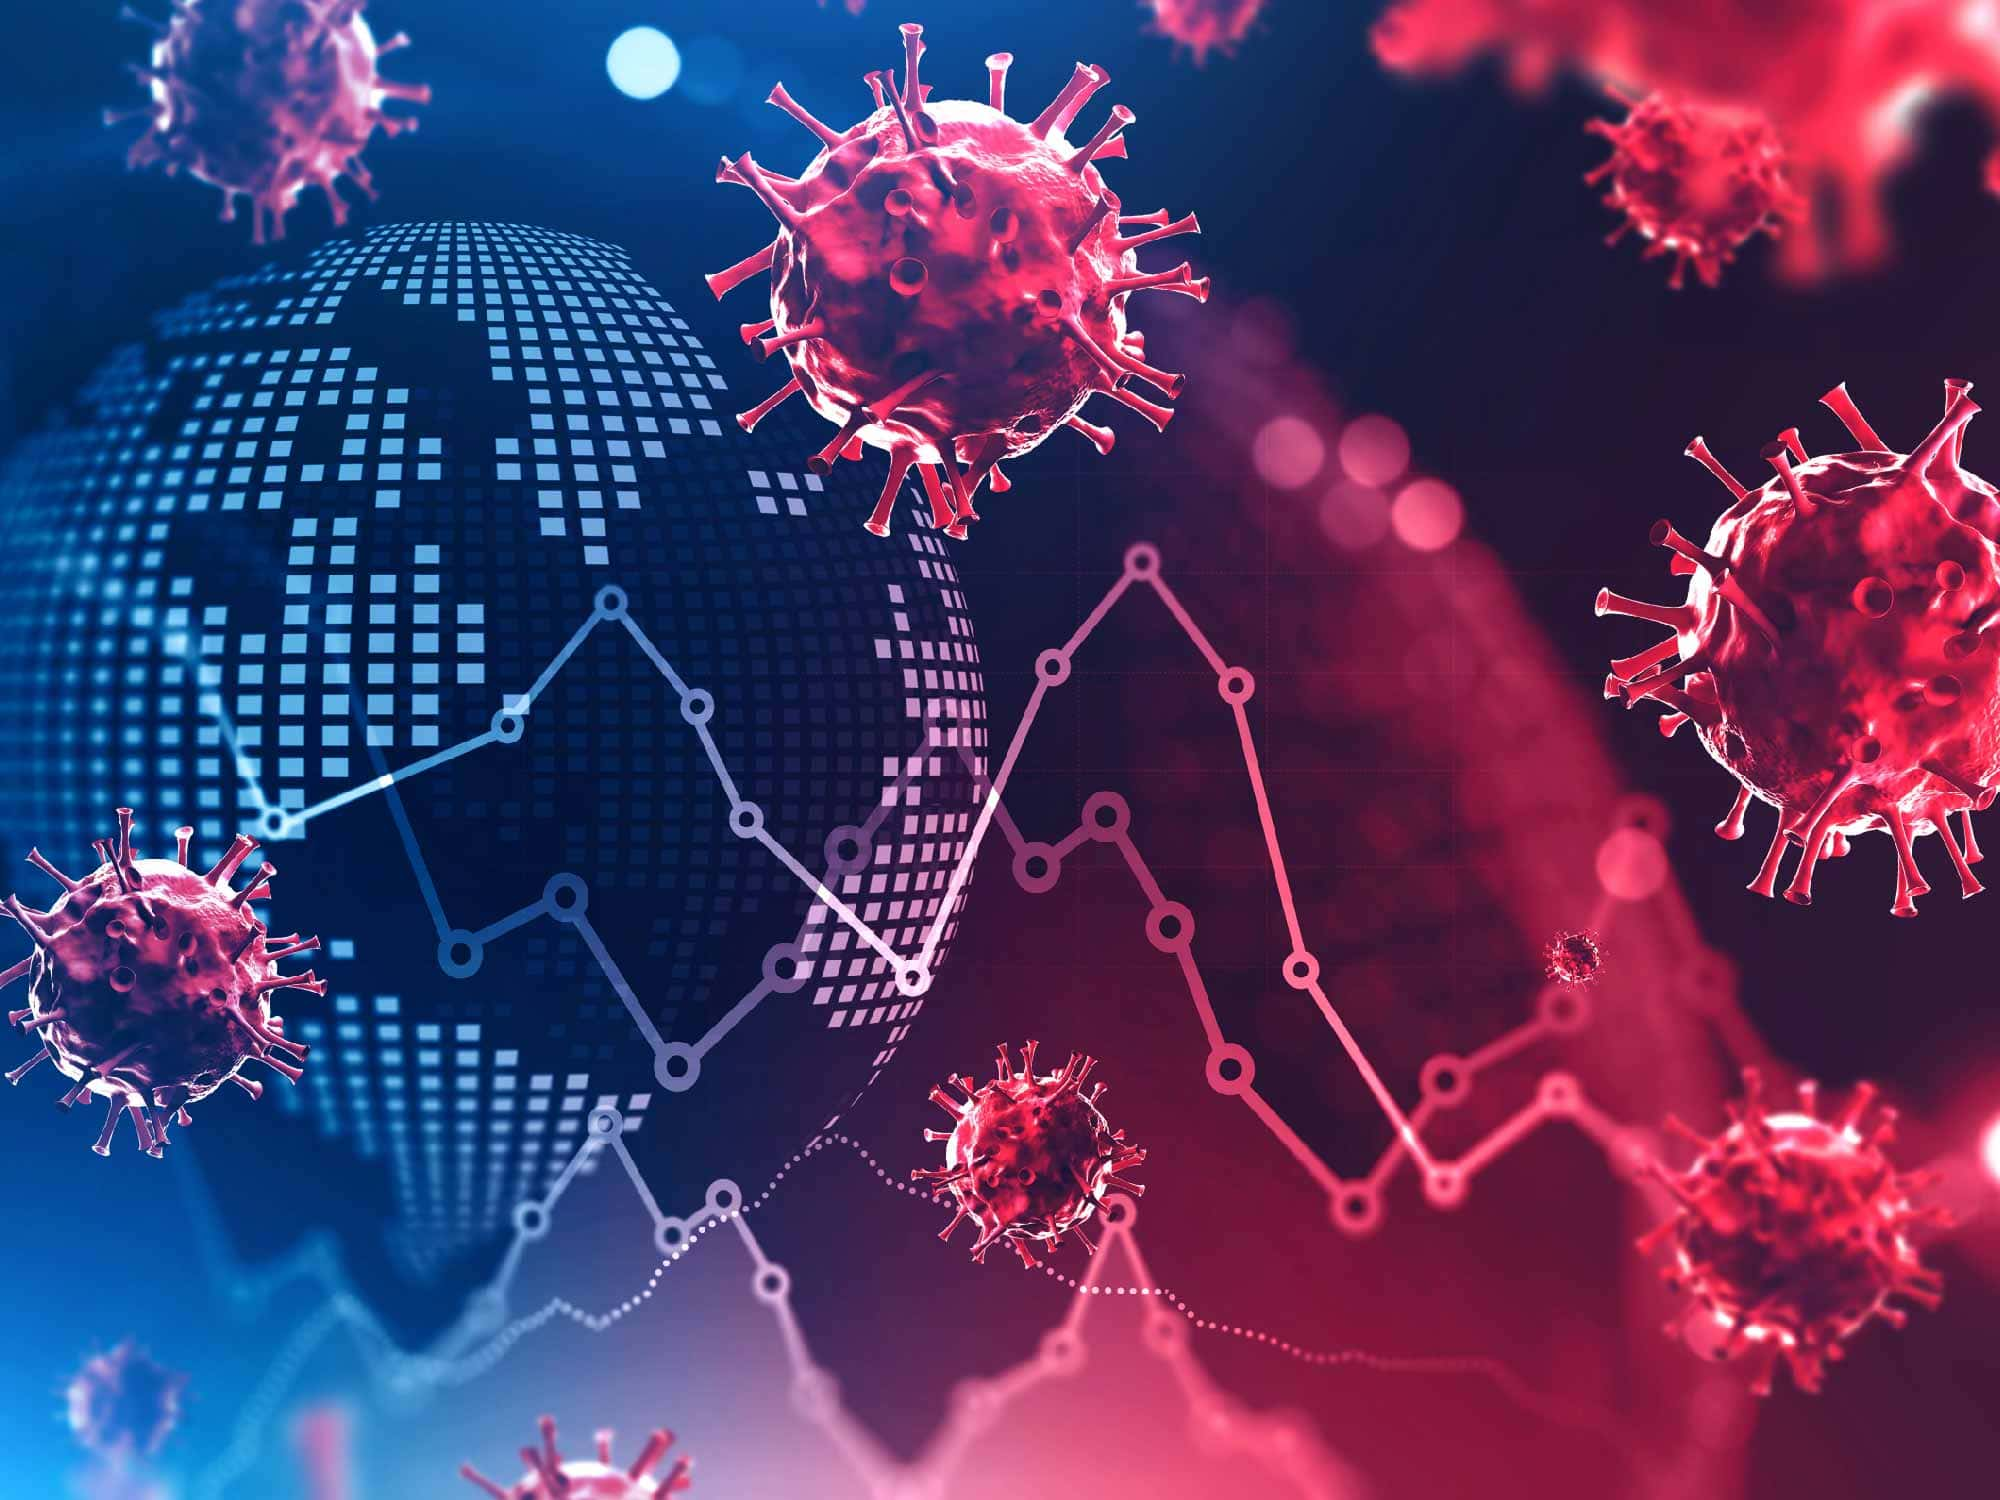 Our sister company TCC give us the low down on what Coronavirus means from a compliance perspective and what remediation risks it could exacerbate for retail banks